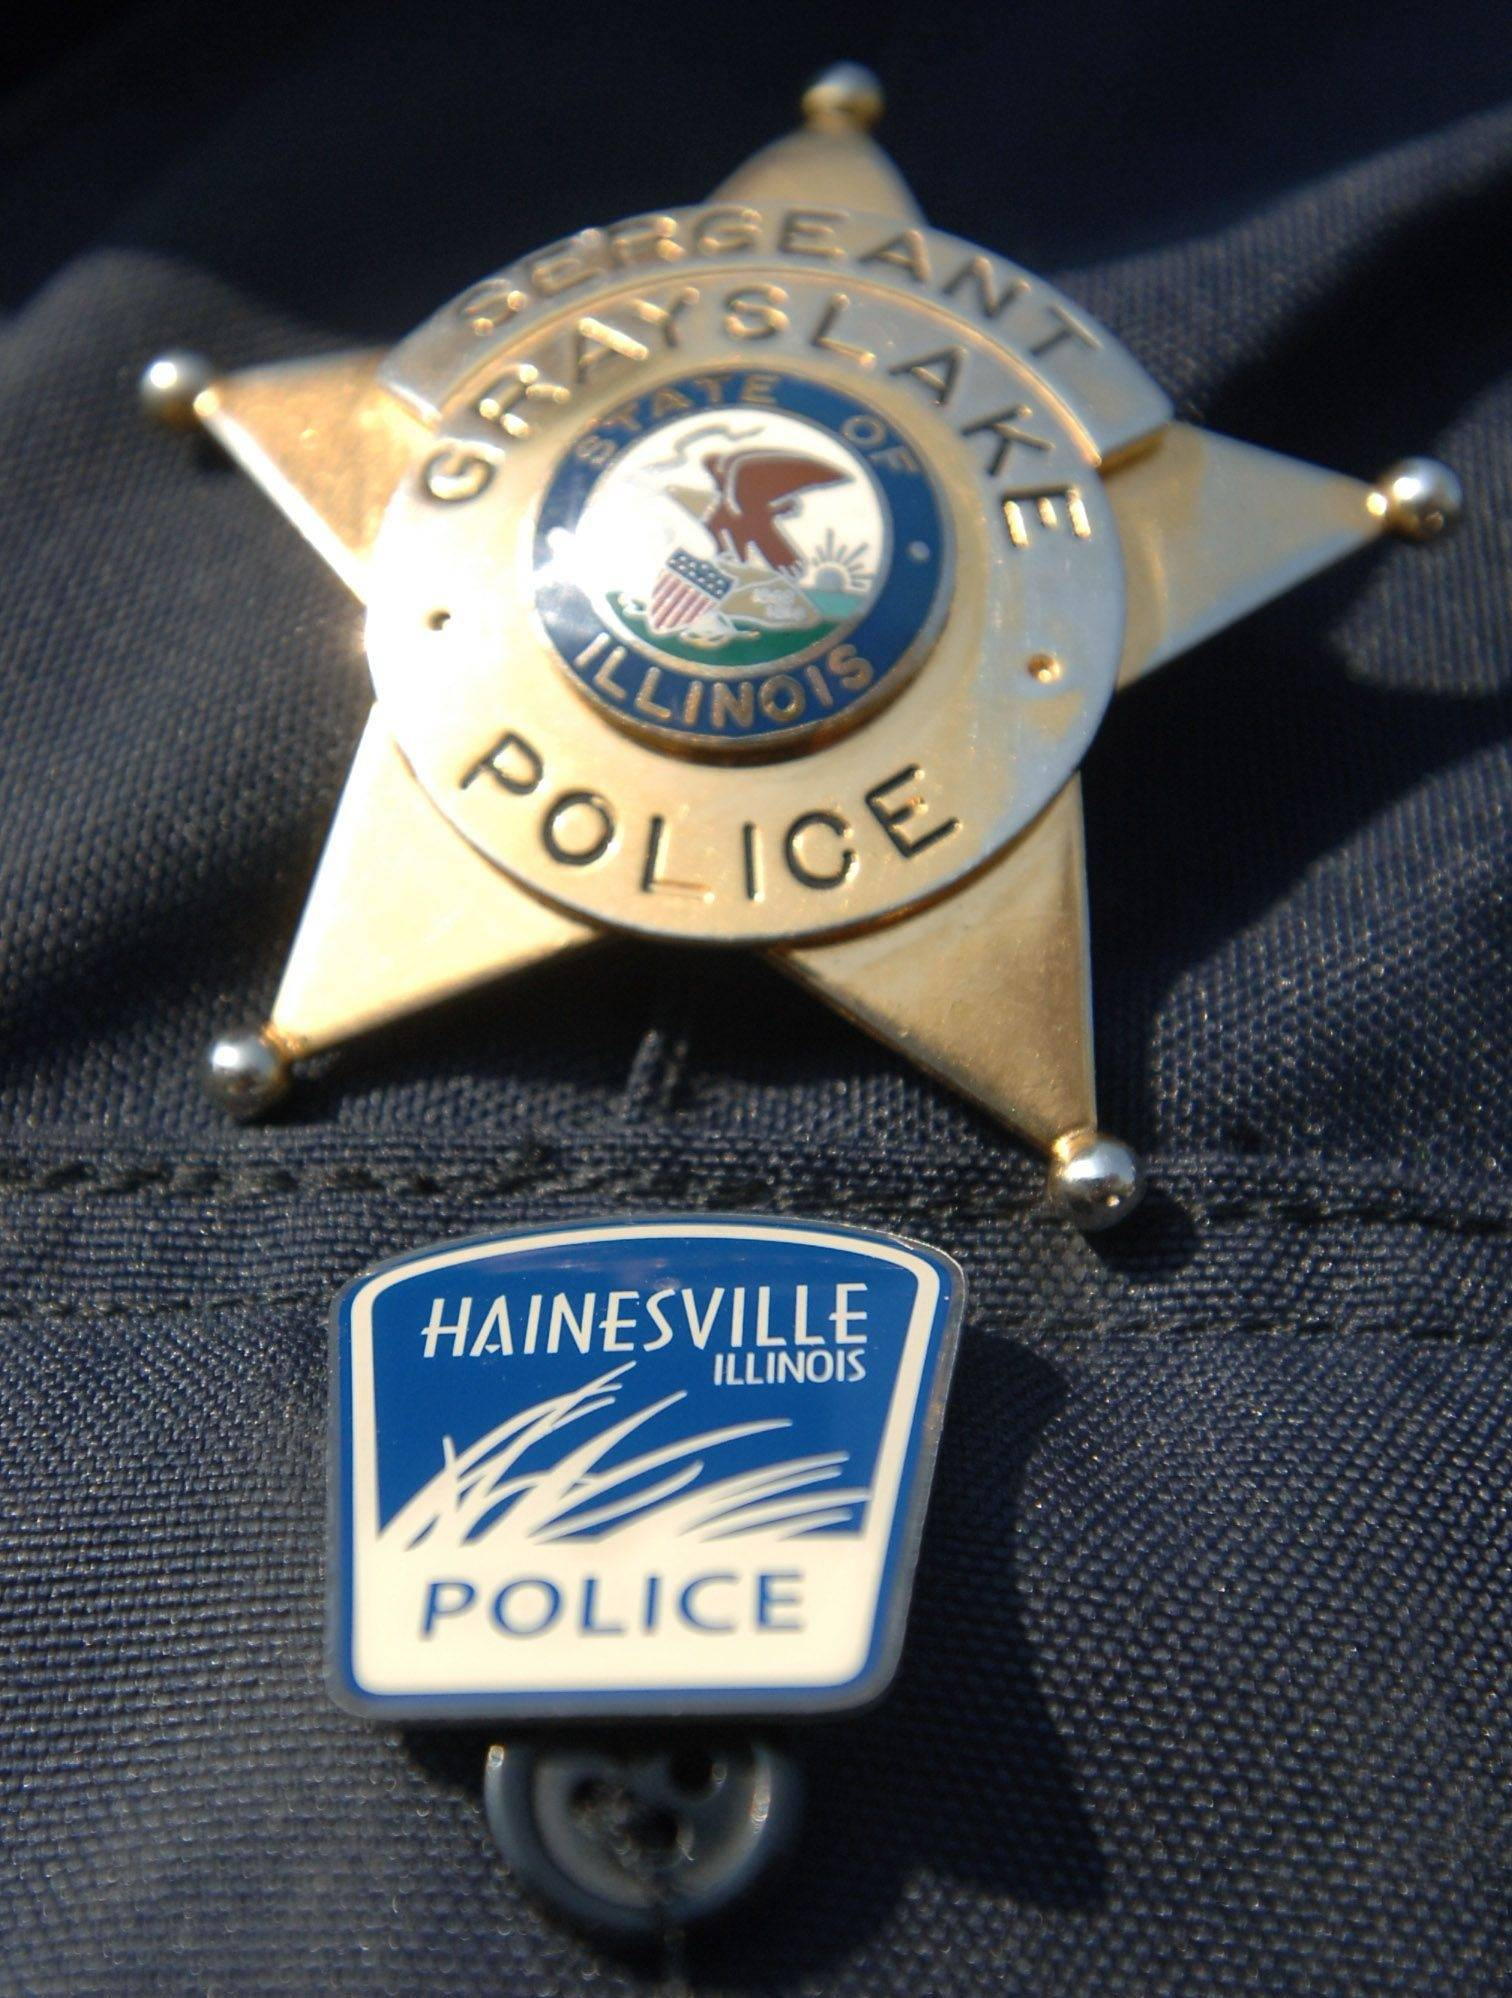 Grayslake police making themselves at home in Hainesville